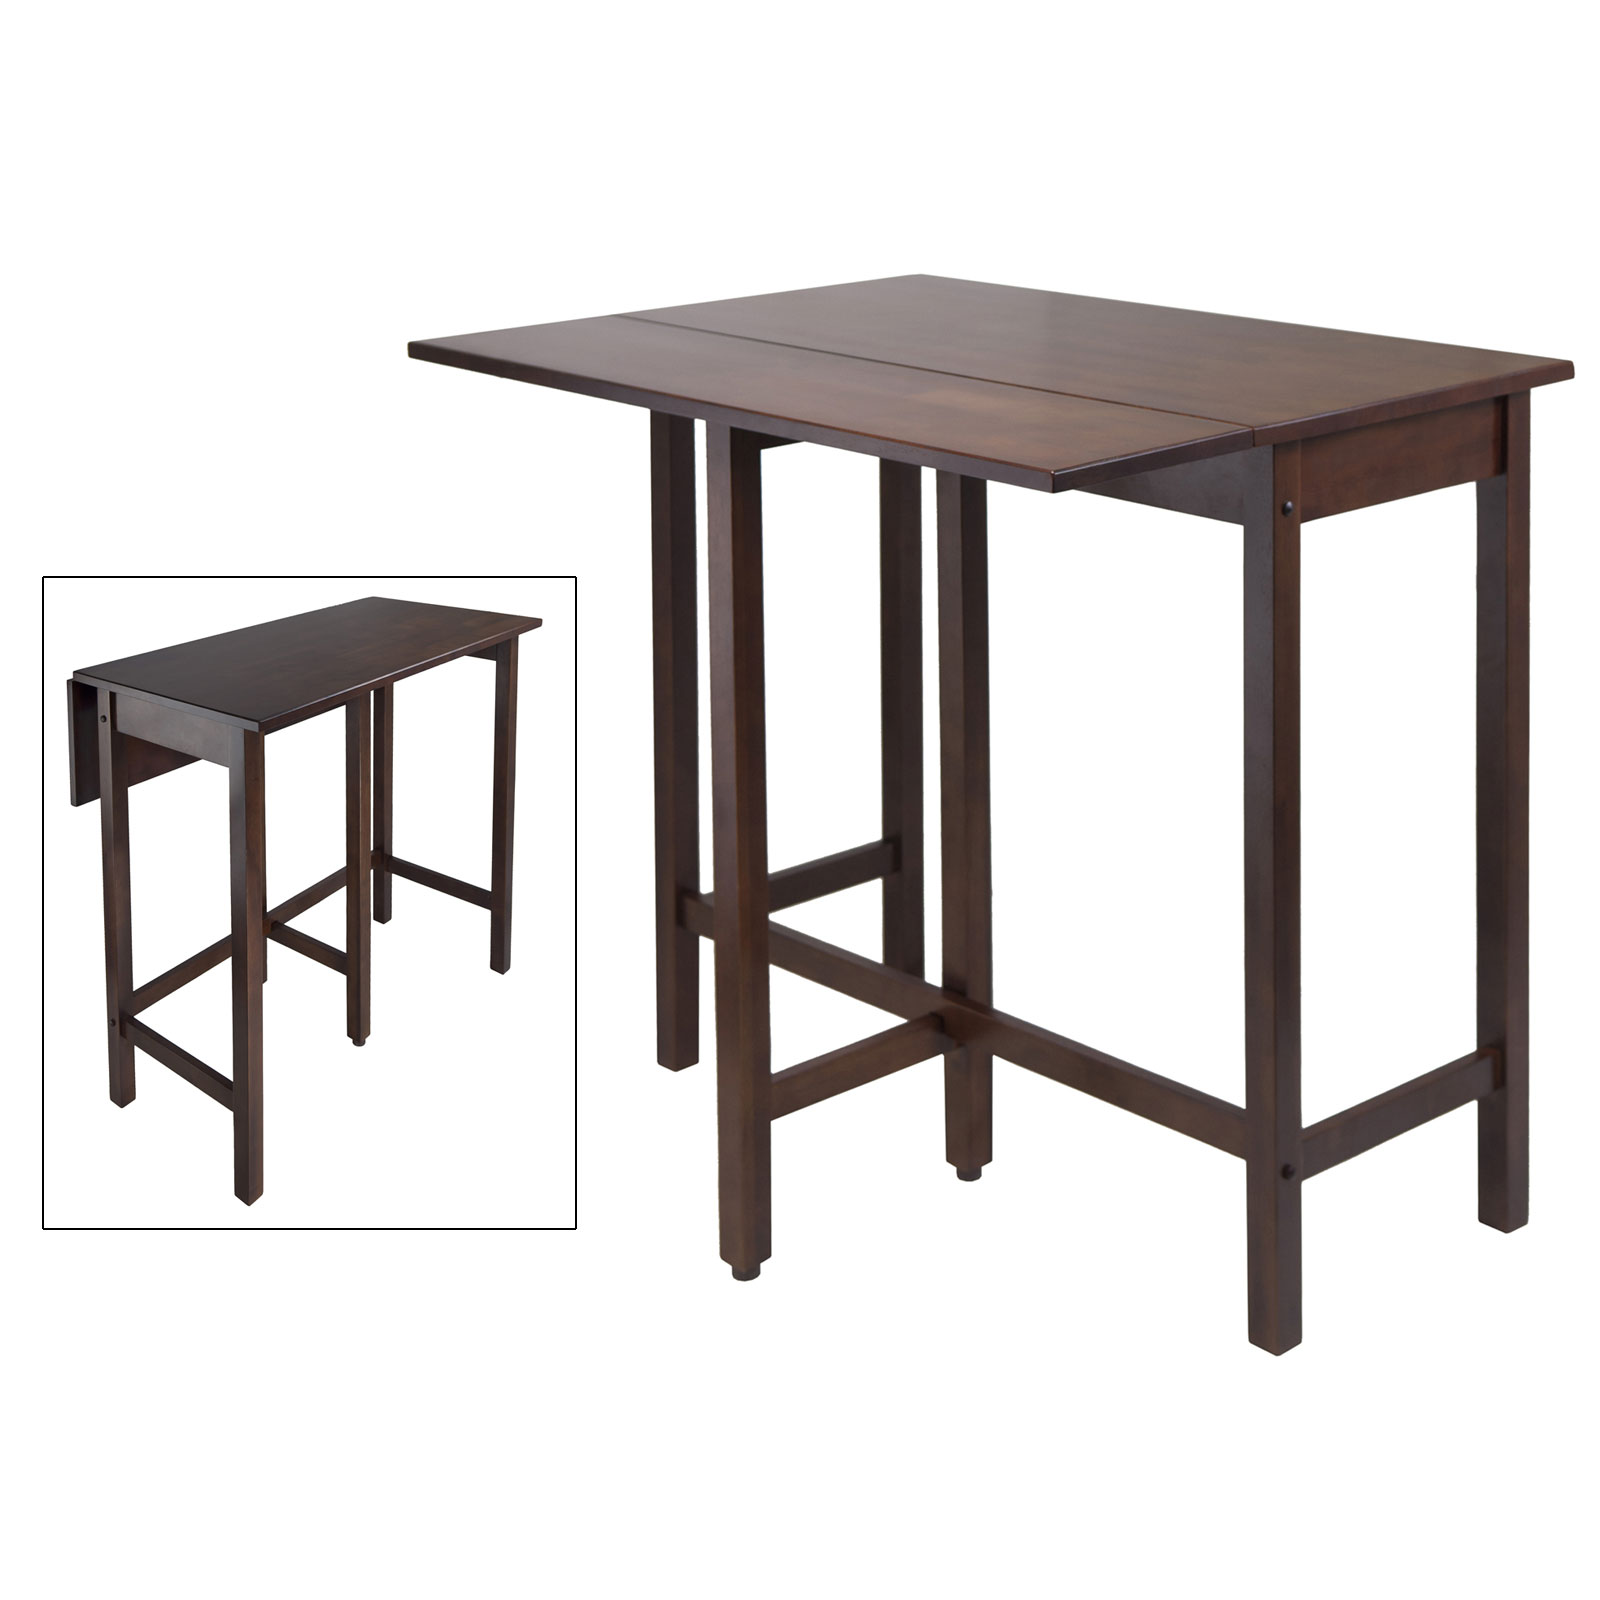 Drop leaf high table by winsome 94149 in dining tables for High dining table